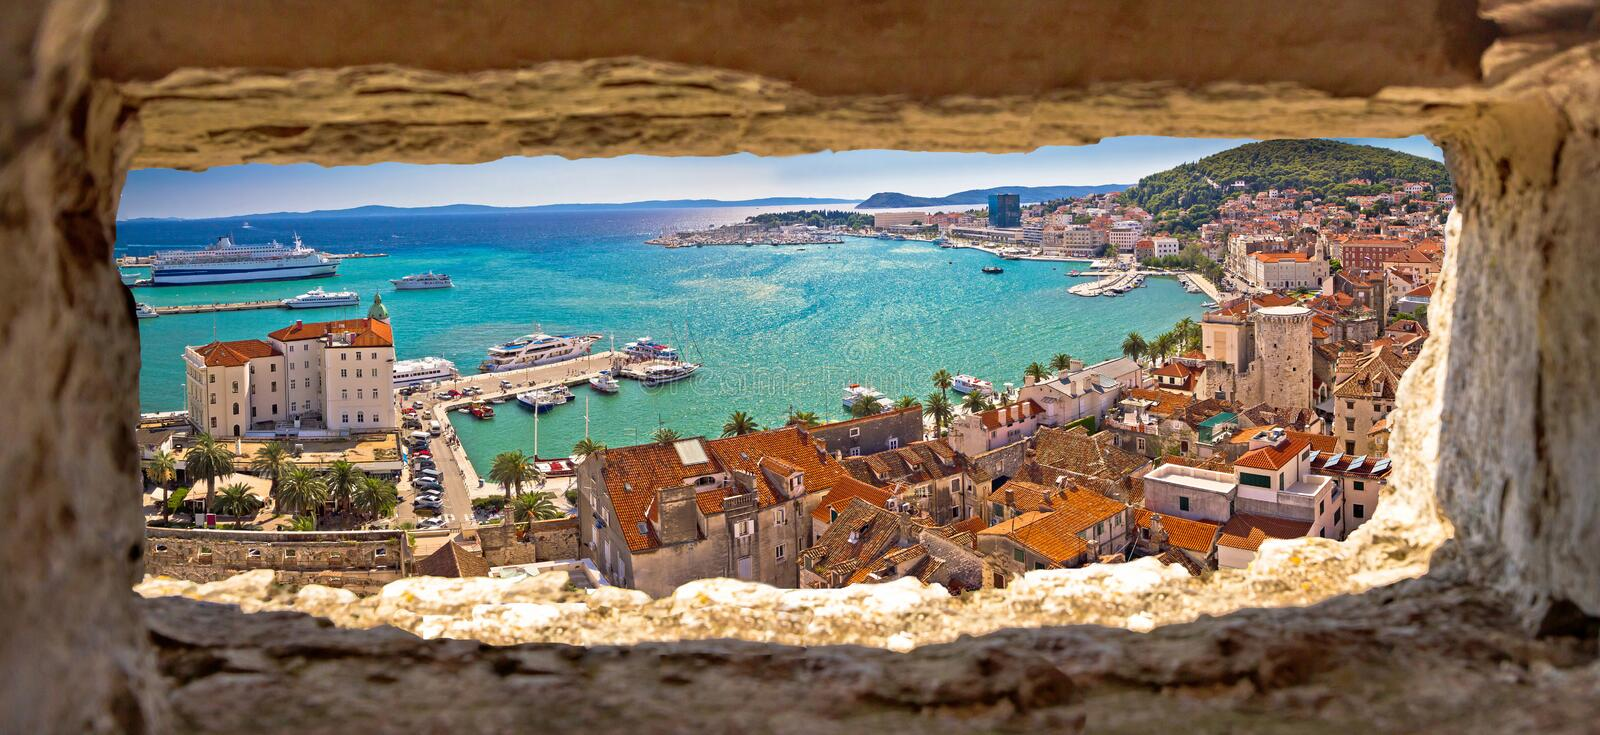 Split waterfront aerial panoramic view through stone window. Dalmatia region of Croatia royalty free stock photo